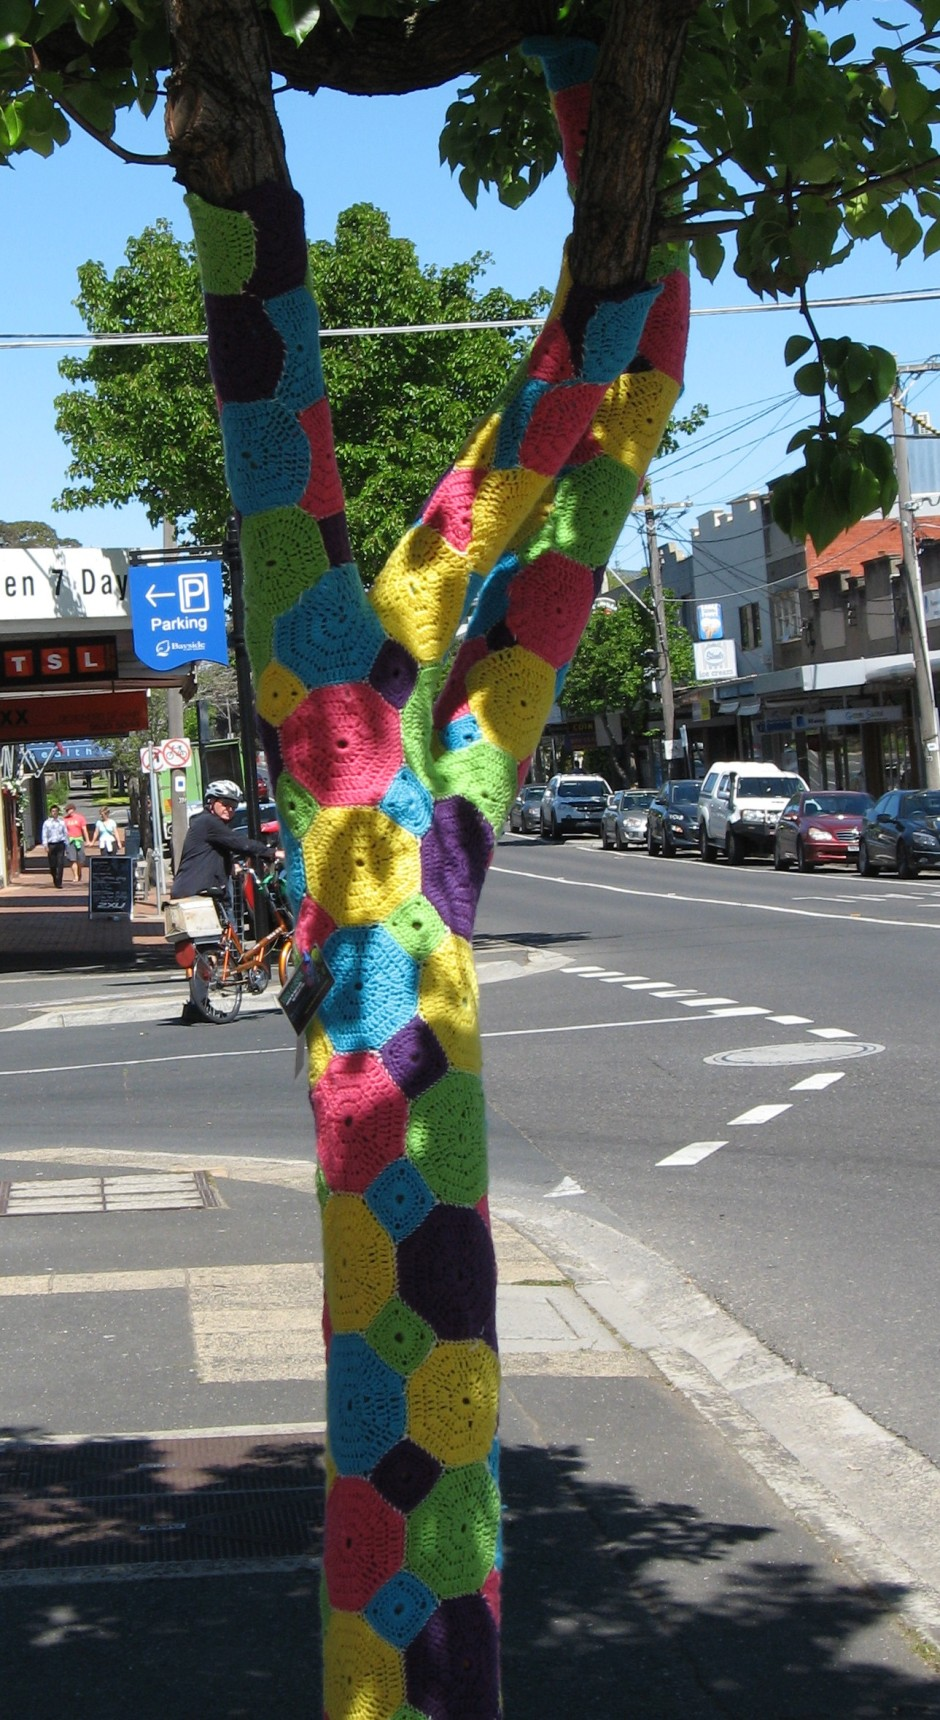 guerilla knitting crochet sleeve for street tree, Is It Art?, Maryann Adair,